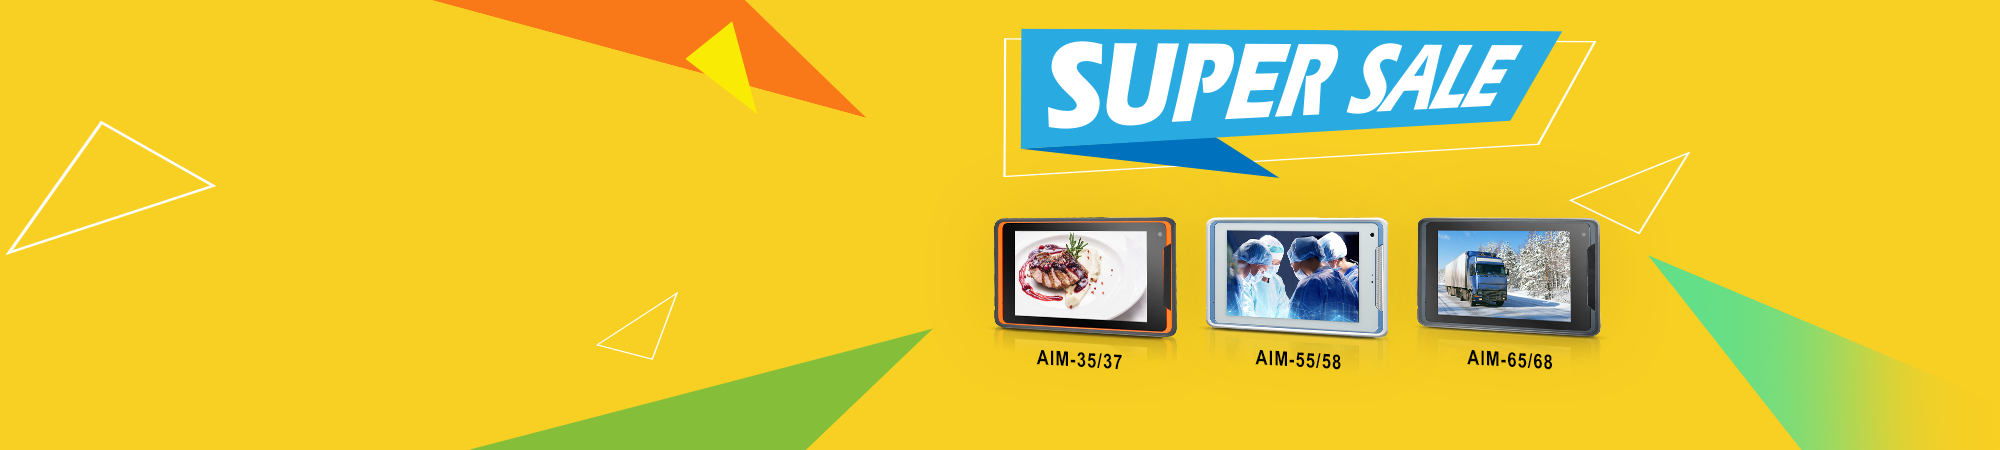 AIM tablets super sales